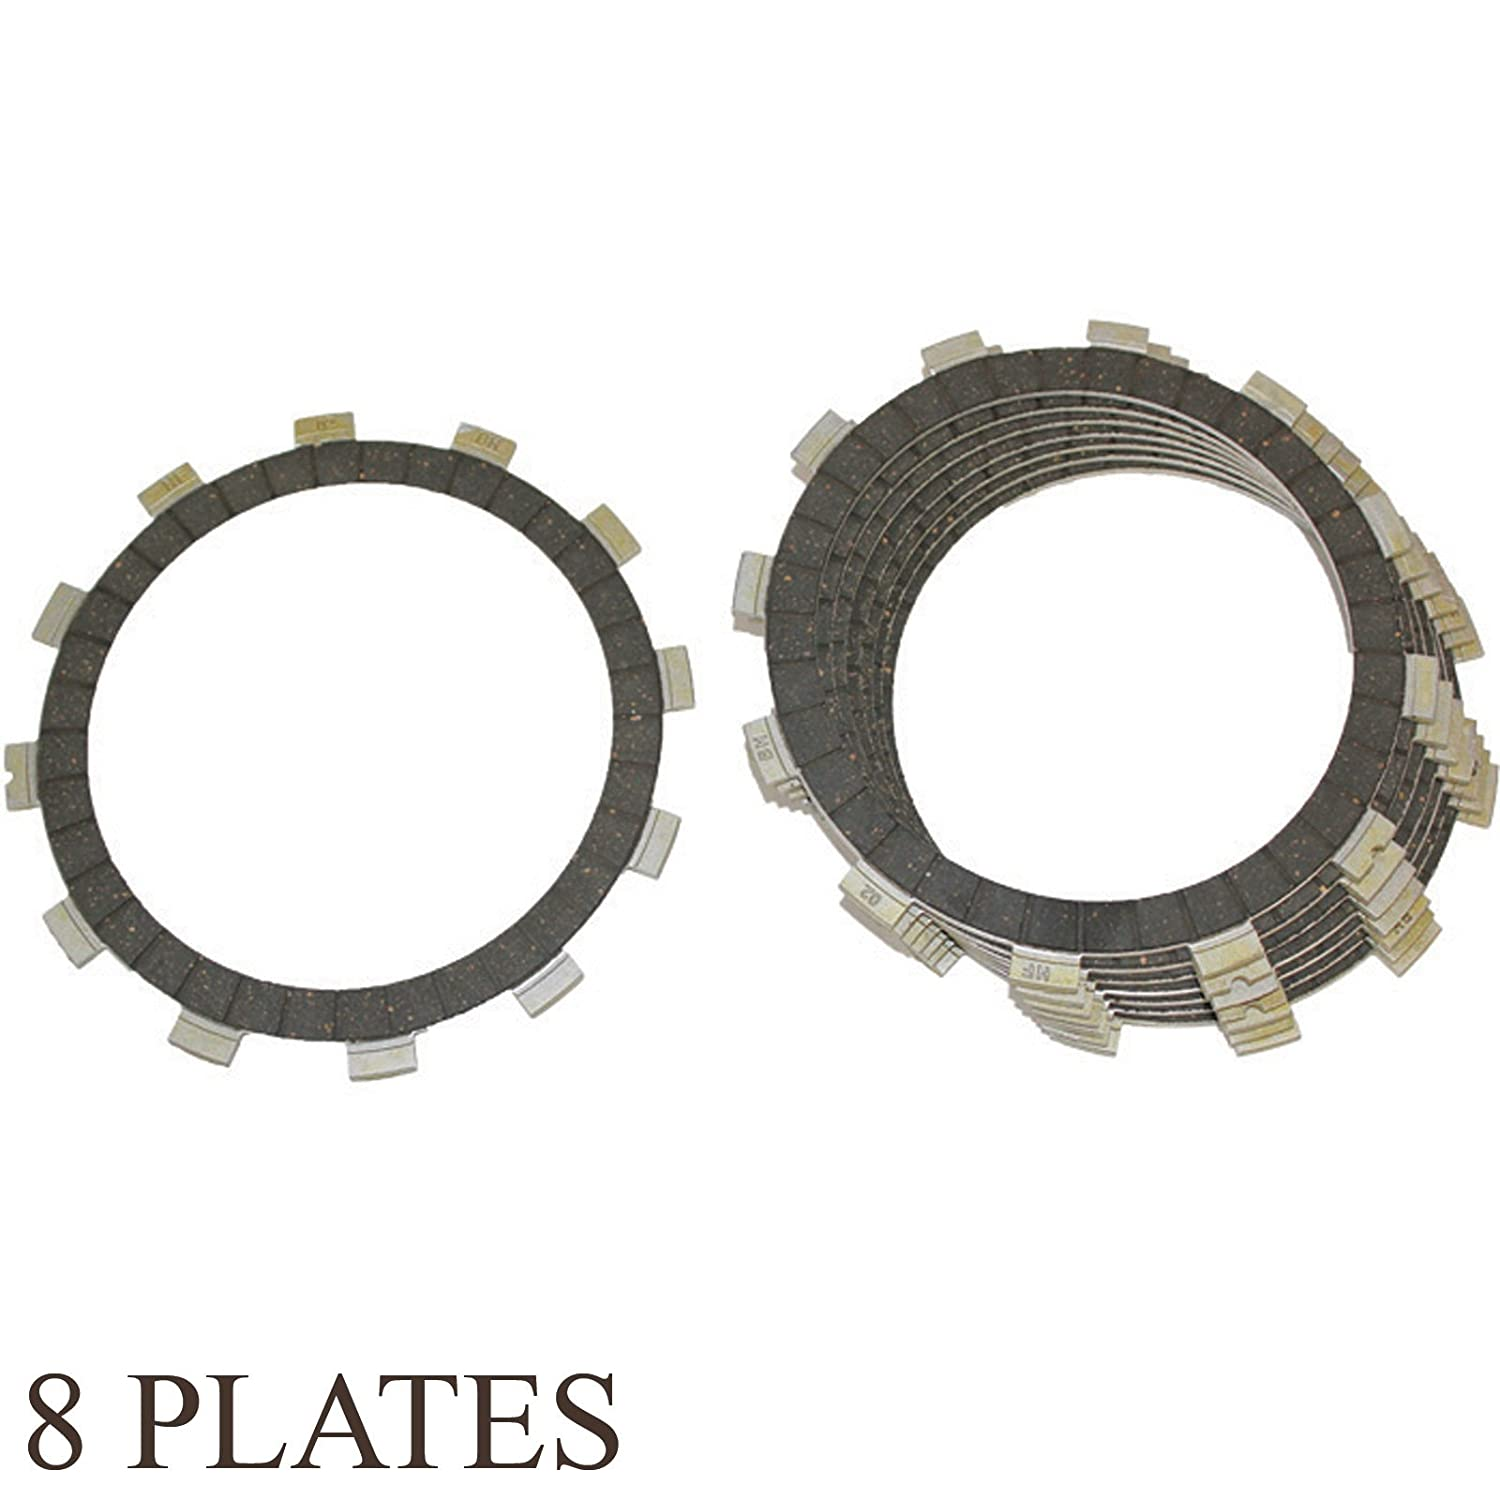 Amazon.com: Caltric CLUTCH FRICTION PLATE Fits YAMAHA FZ6 FZ6N FZ6S FZ600S FZ600SC FZ-600SC 2004-2007 8-PLATES: Automotive